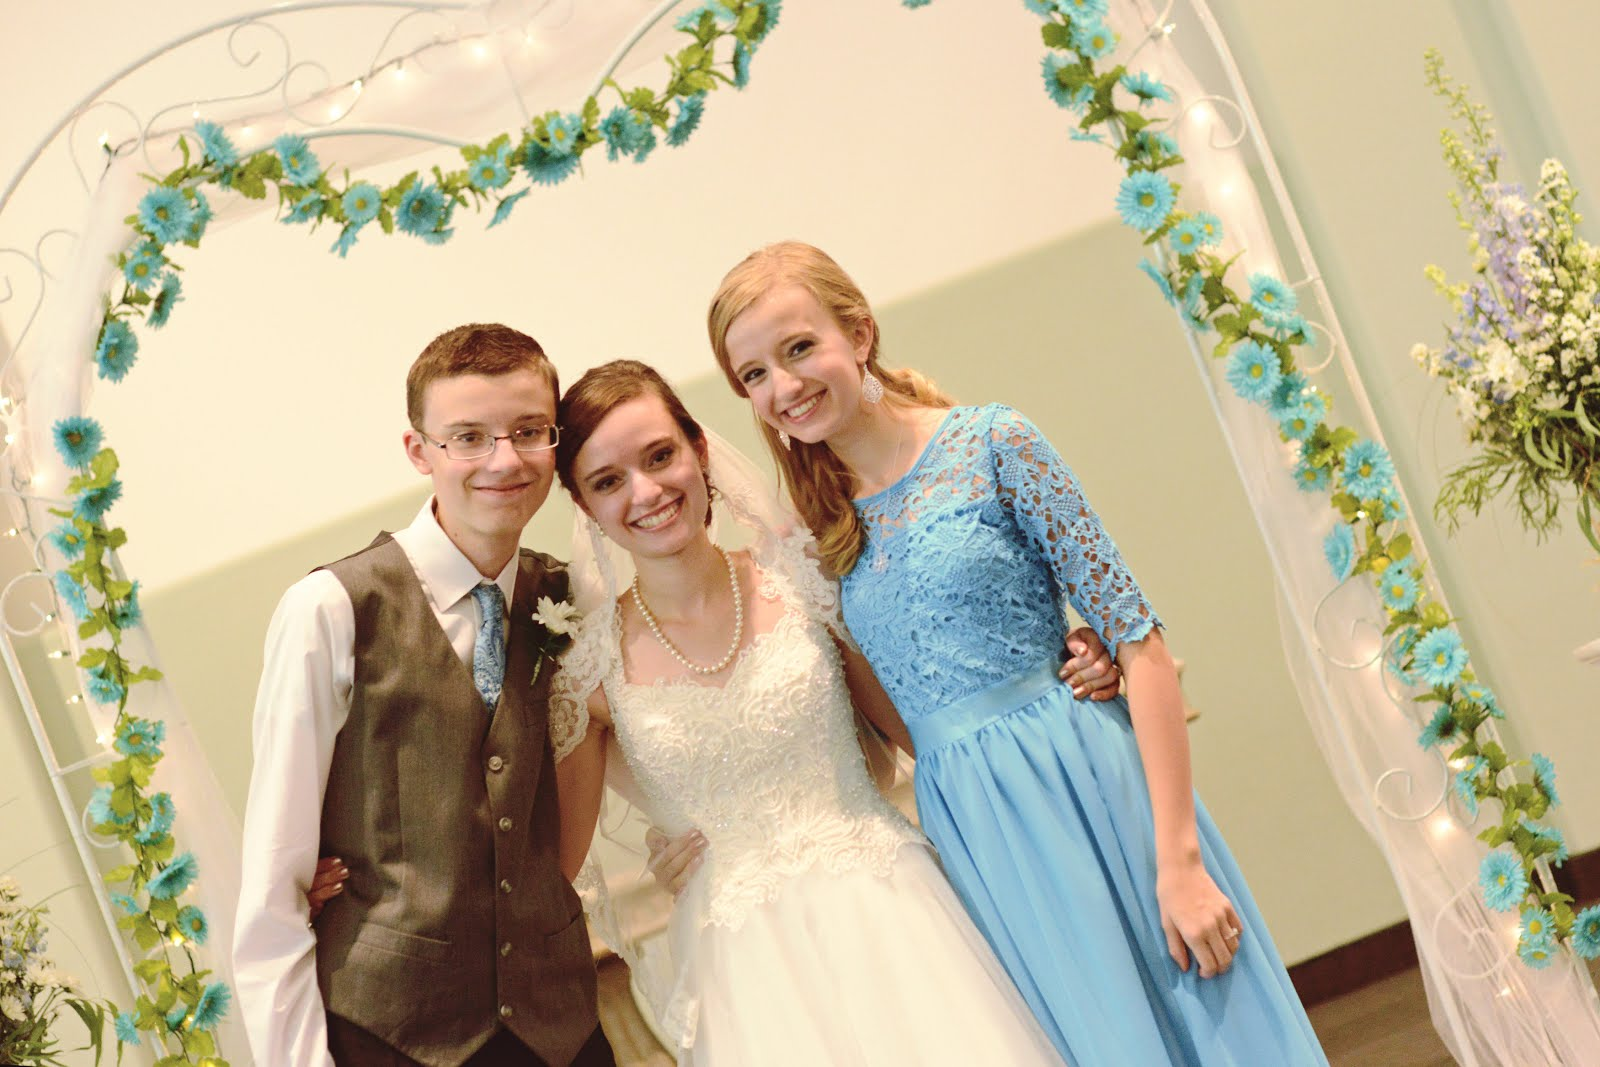 Molly, Noah and Lexi at Molly's wedding